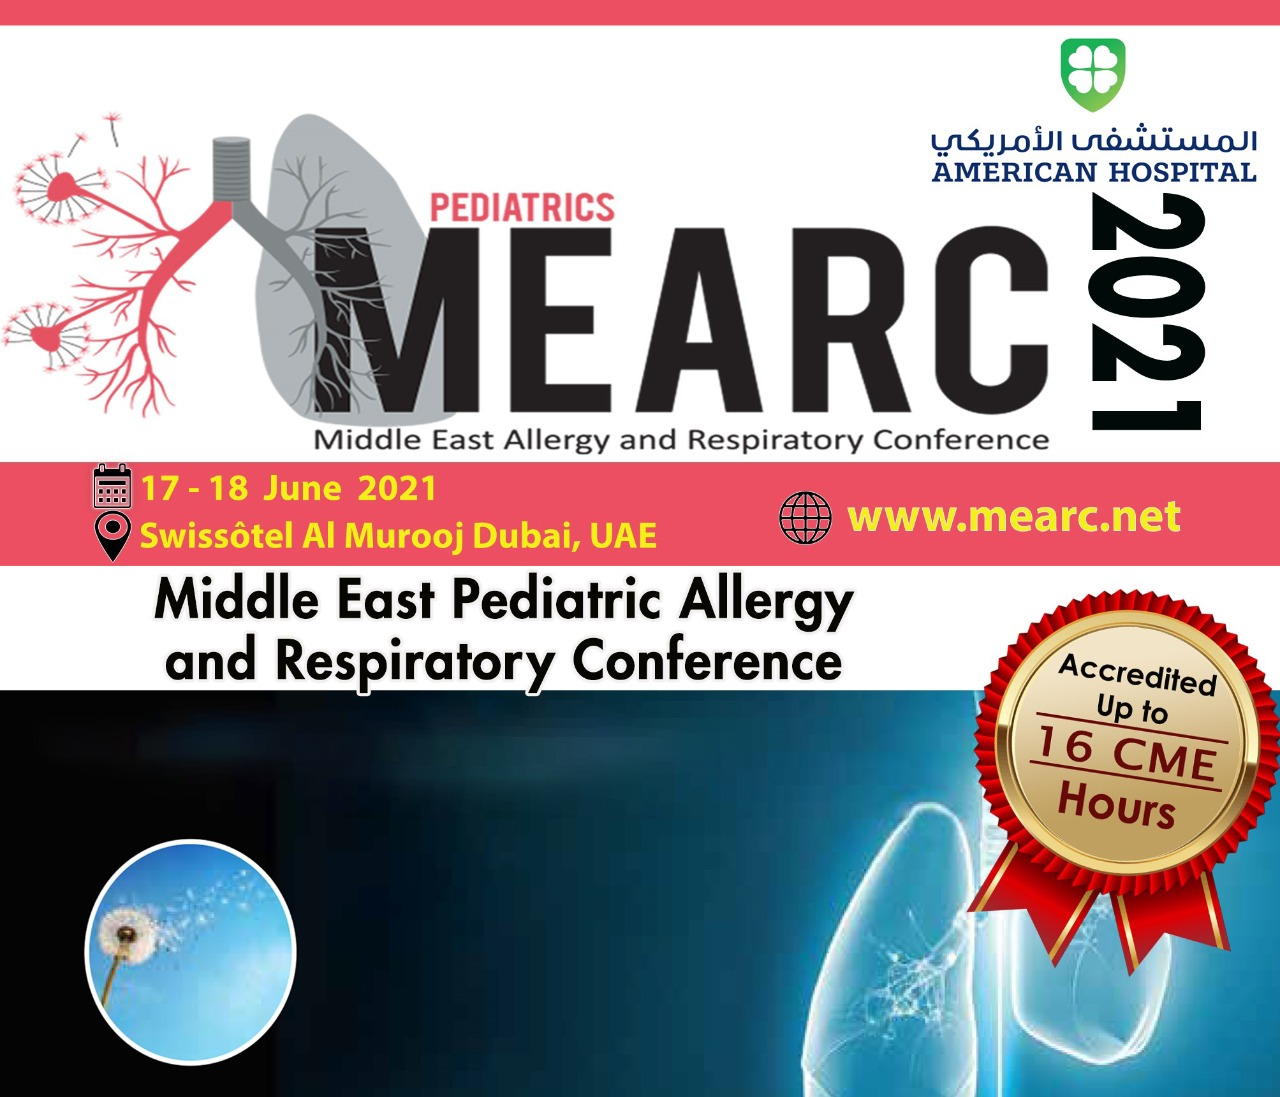 The Pediatric Middle East Allergy and Respiratory Conference 2021 (MEARC 2021)